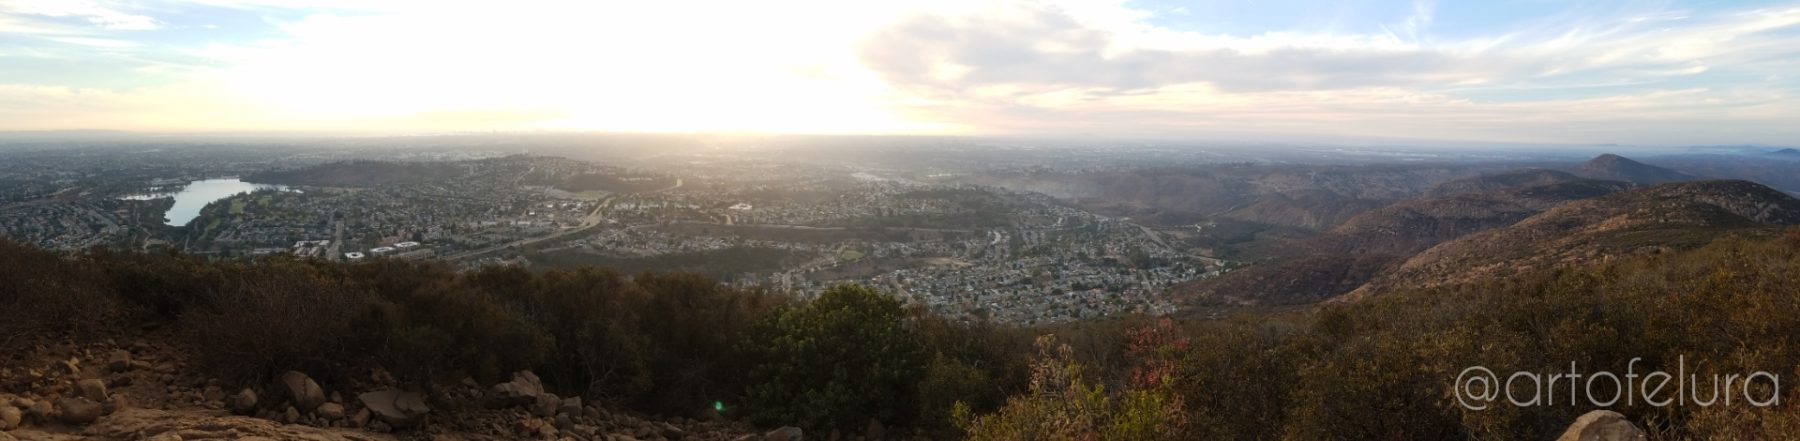 PANORAMA OF SAN DIEGO FROM THE VIEW OF COWELS MOUNTAIN SAN DIEGO